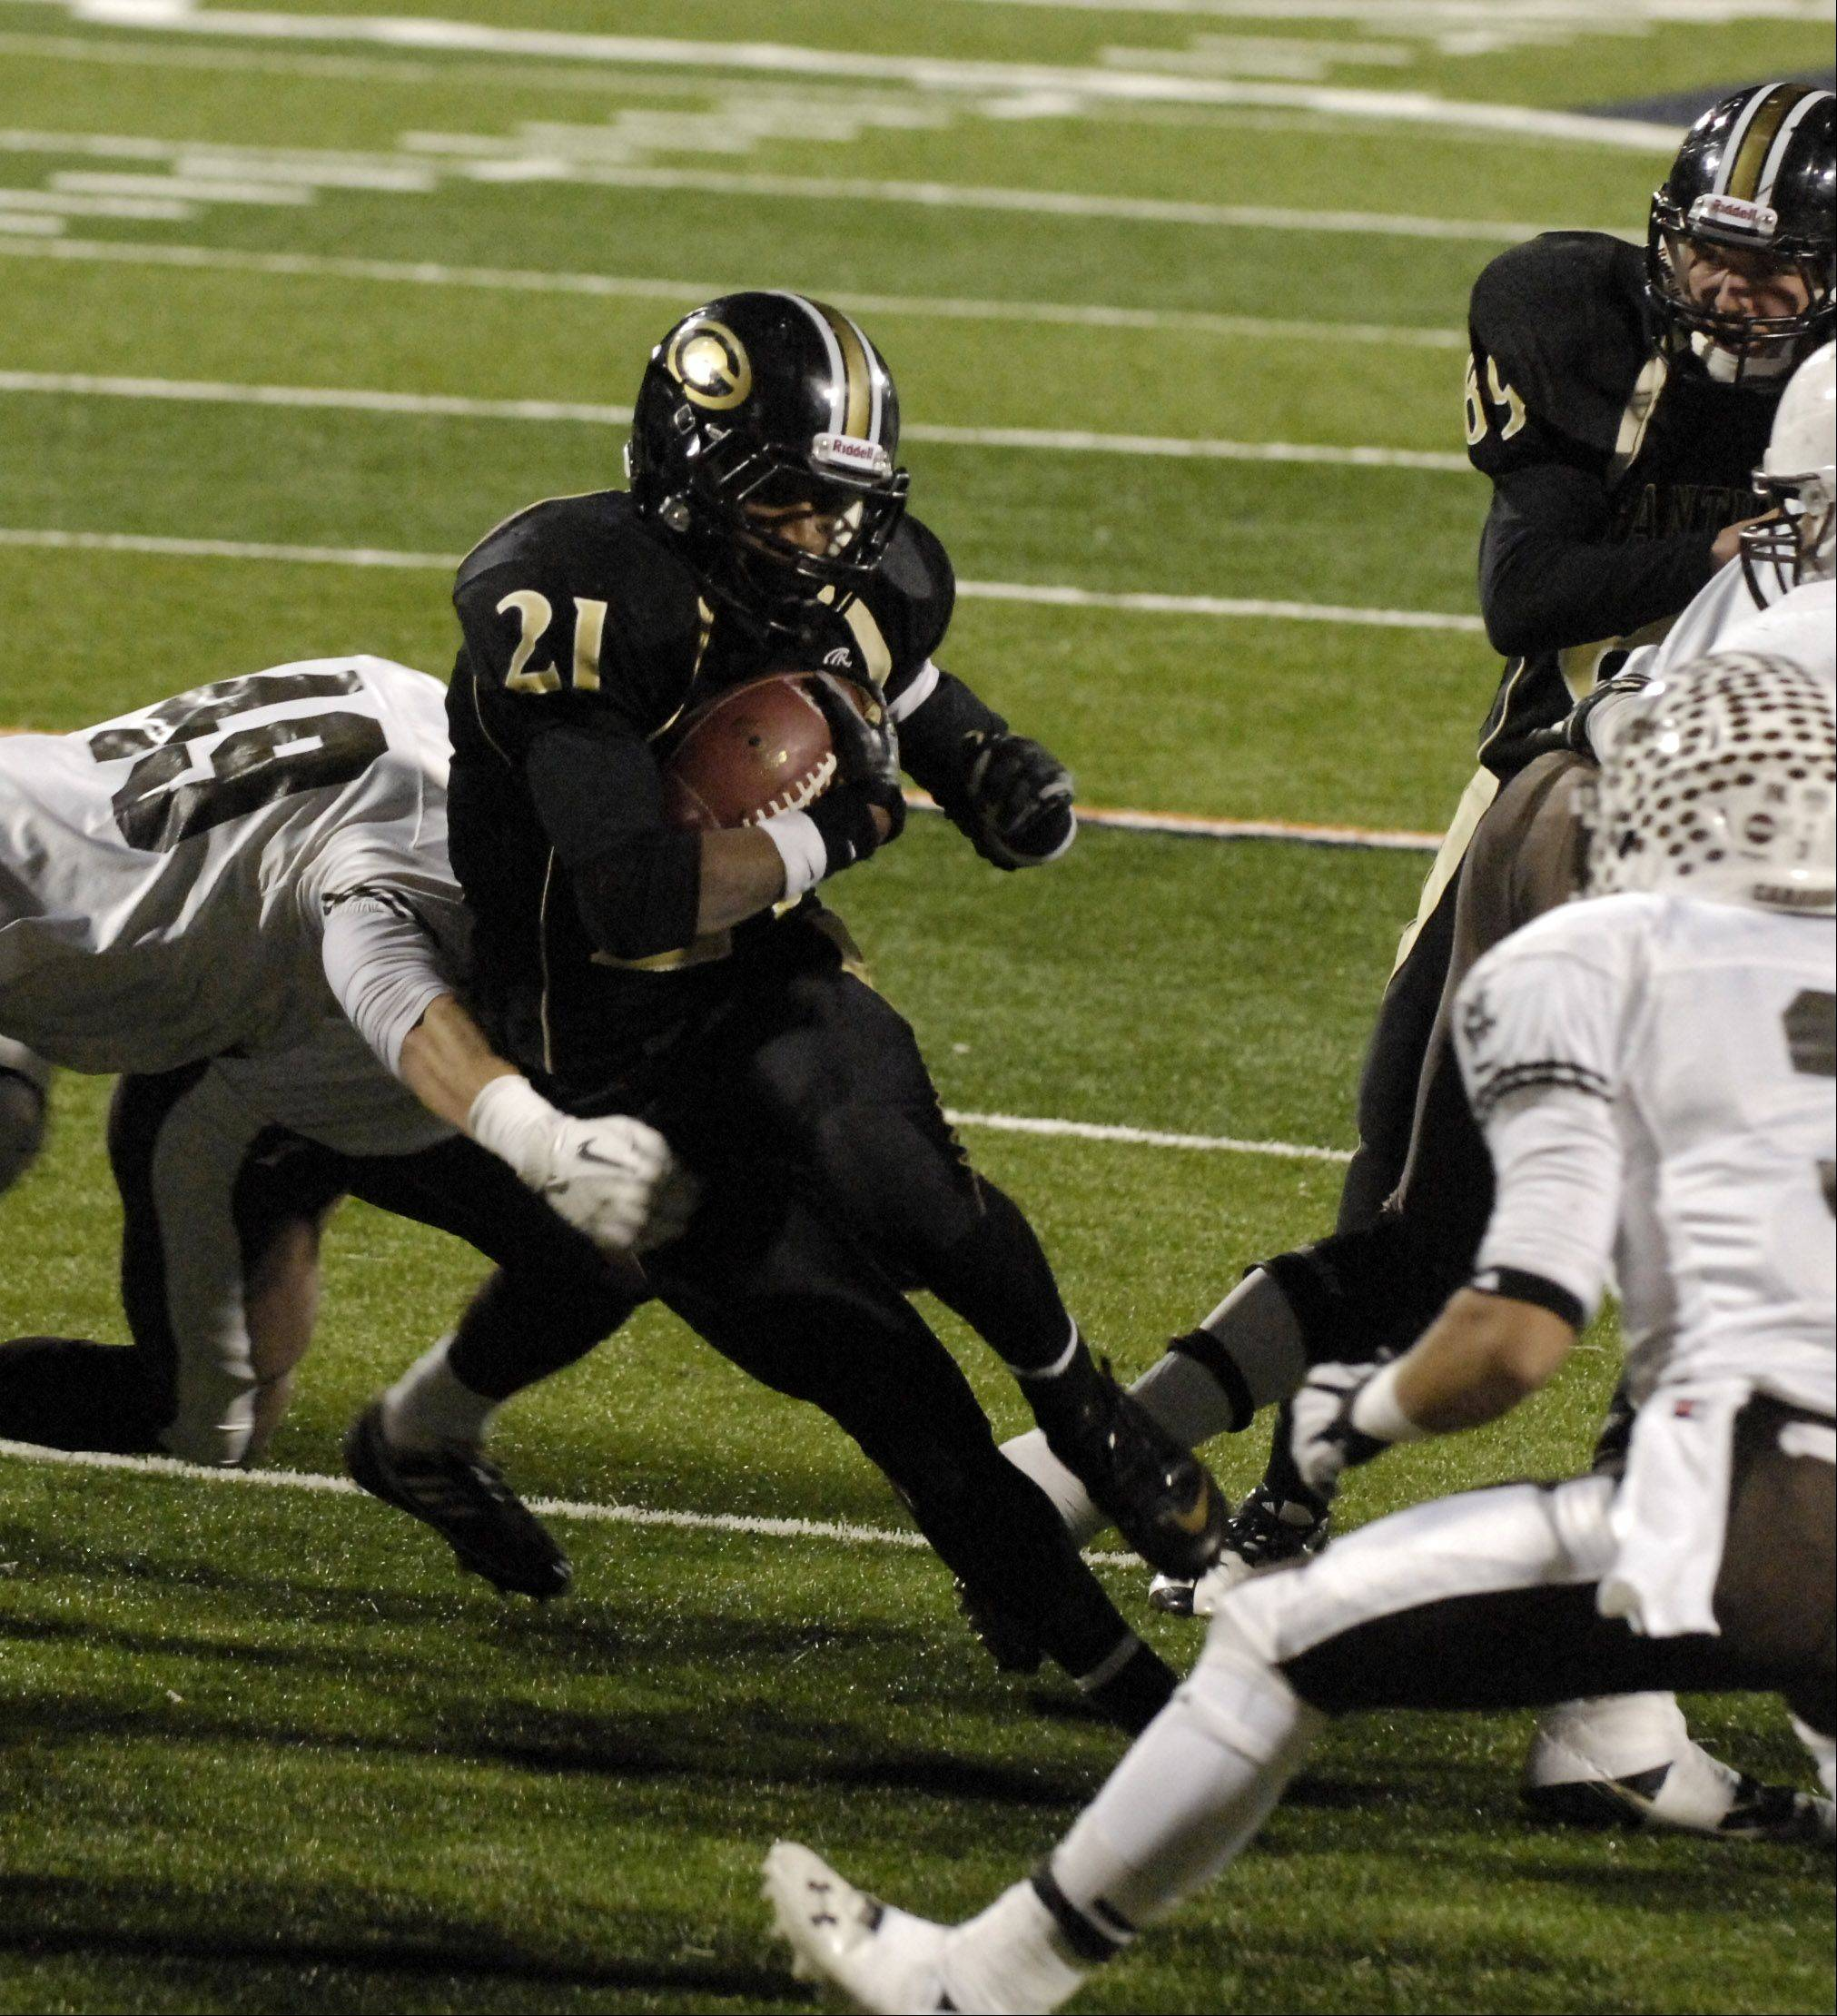 Images from the 8A state title game between Glenbard North and Mt. Carmel Saturday in Champaign, November 24, 2012.